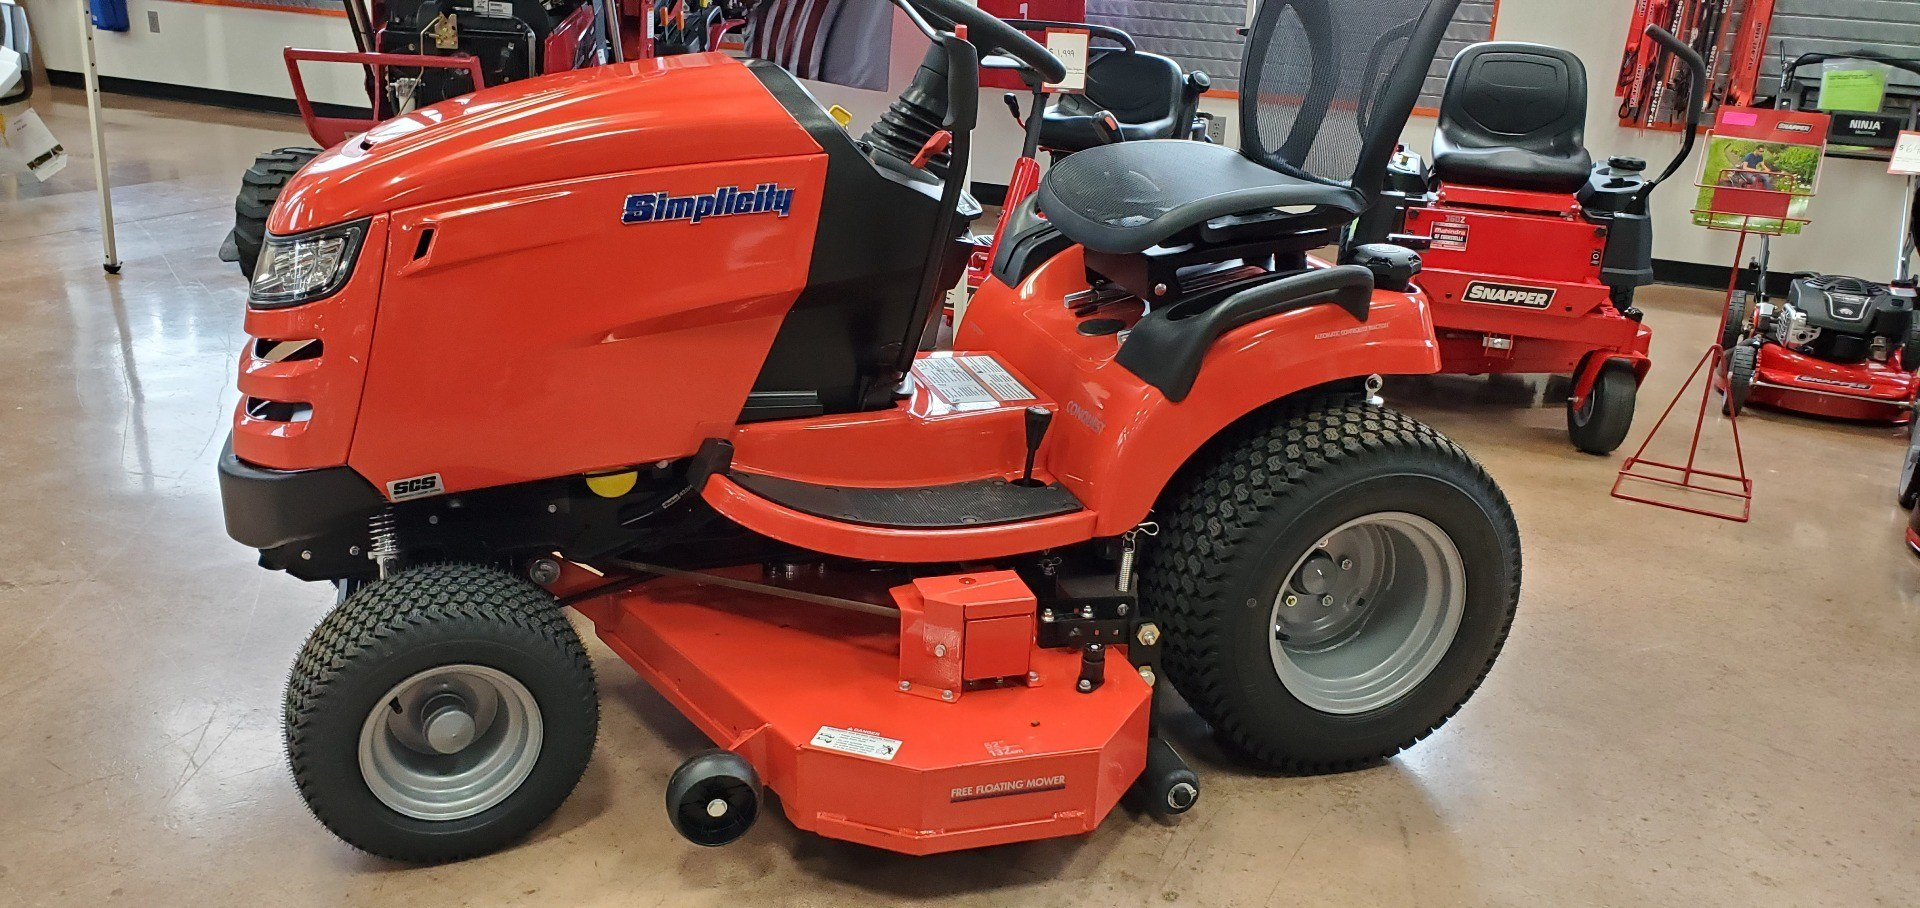 2019 Simplicity Conquest 52 in. Briggs & Stratton 25 hp in Evansville, Indiana - Photo 1